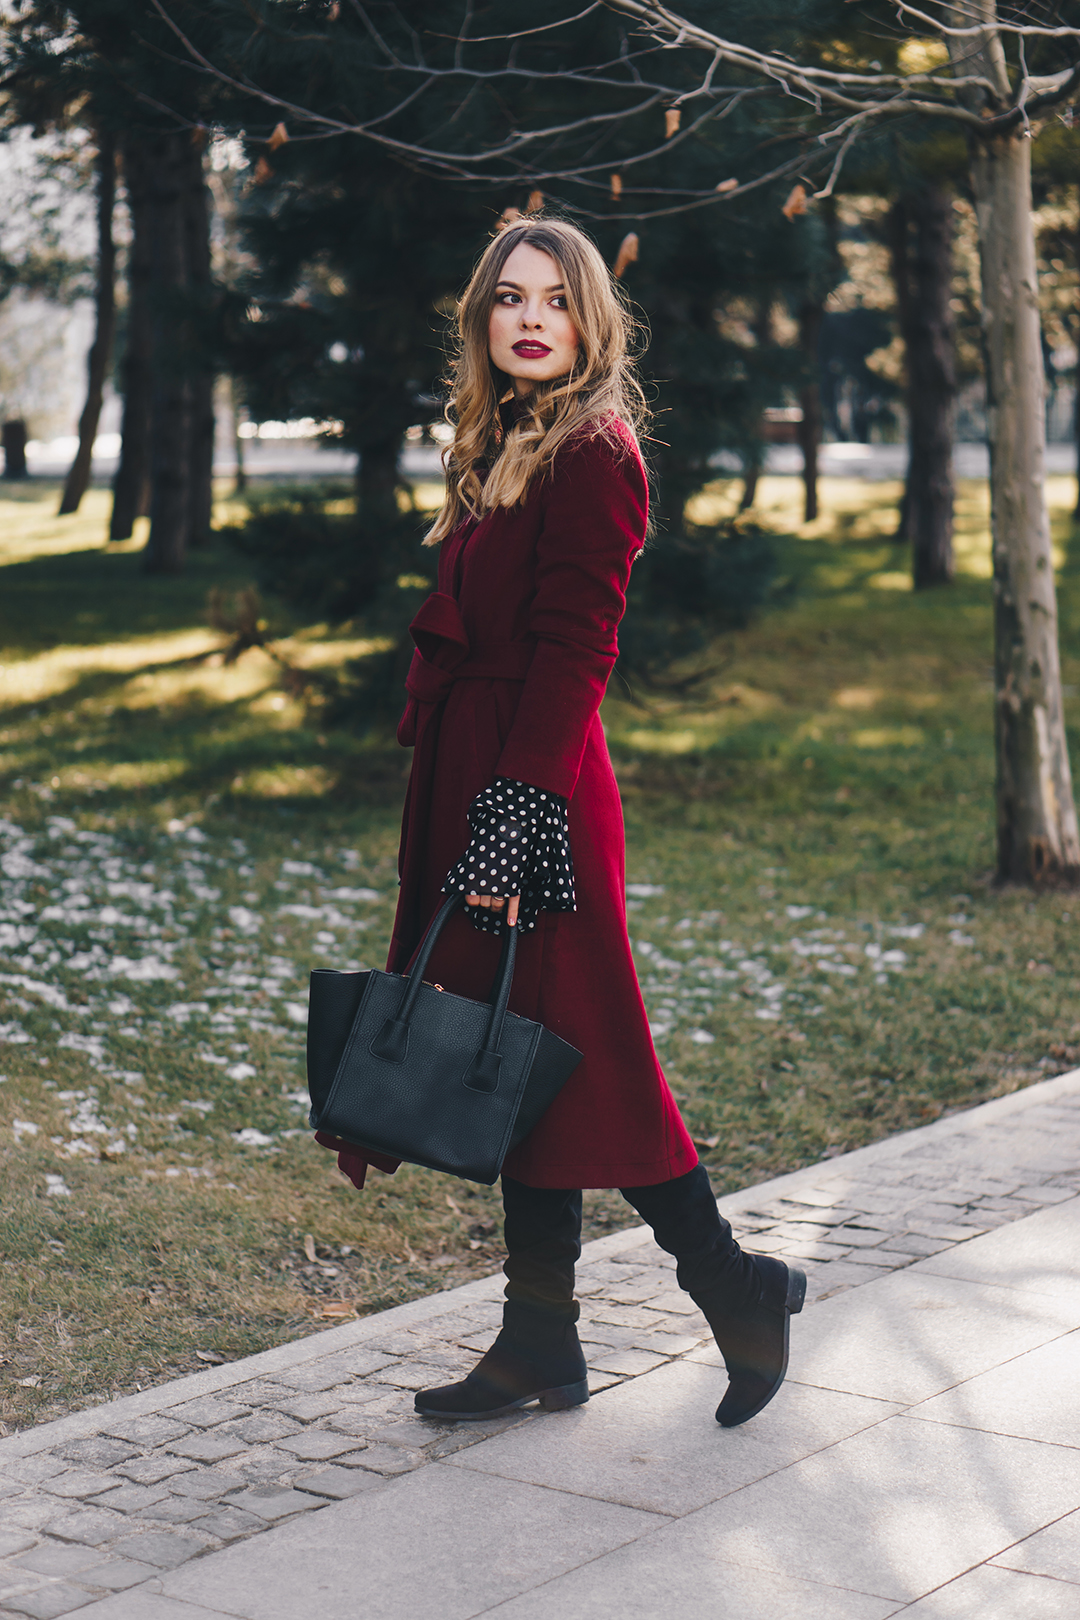 red-wool-coat-polka-dots-bell-sleeves-blouse-winter-outfit-6